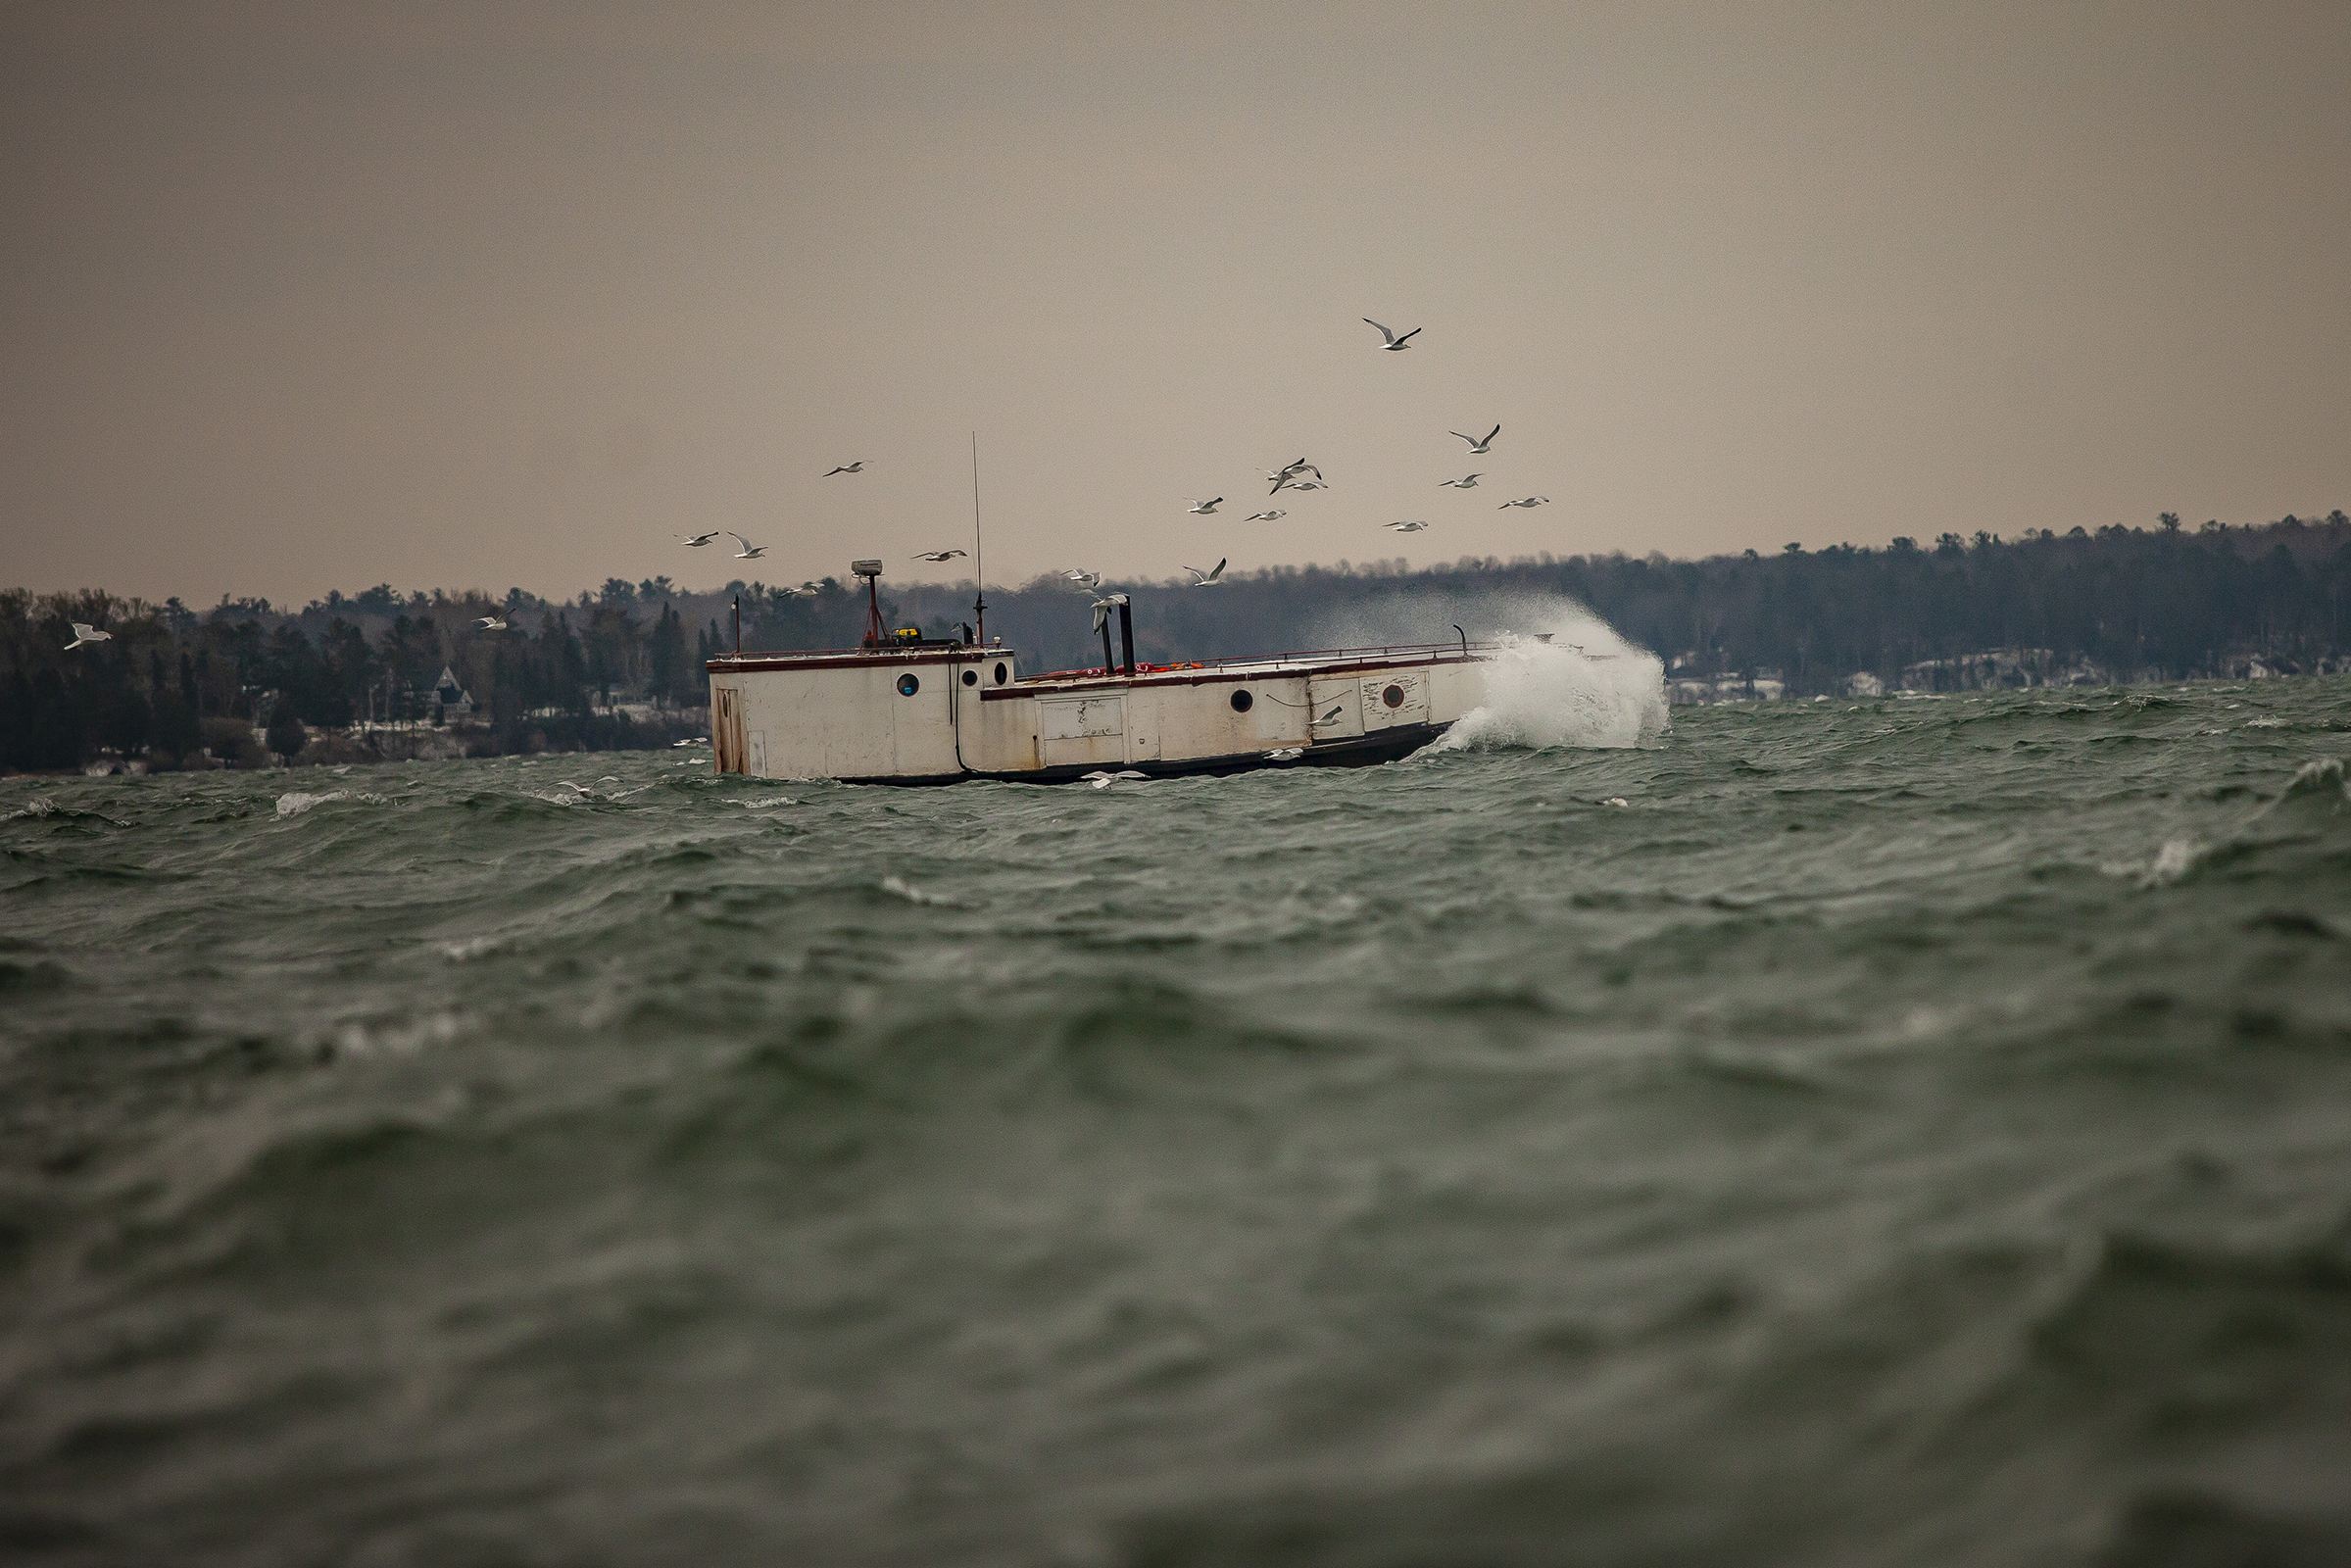 FishingBoat-Gulls-Waves.jpg